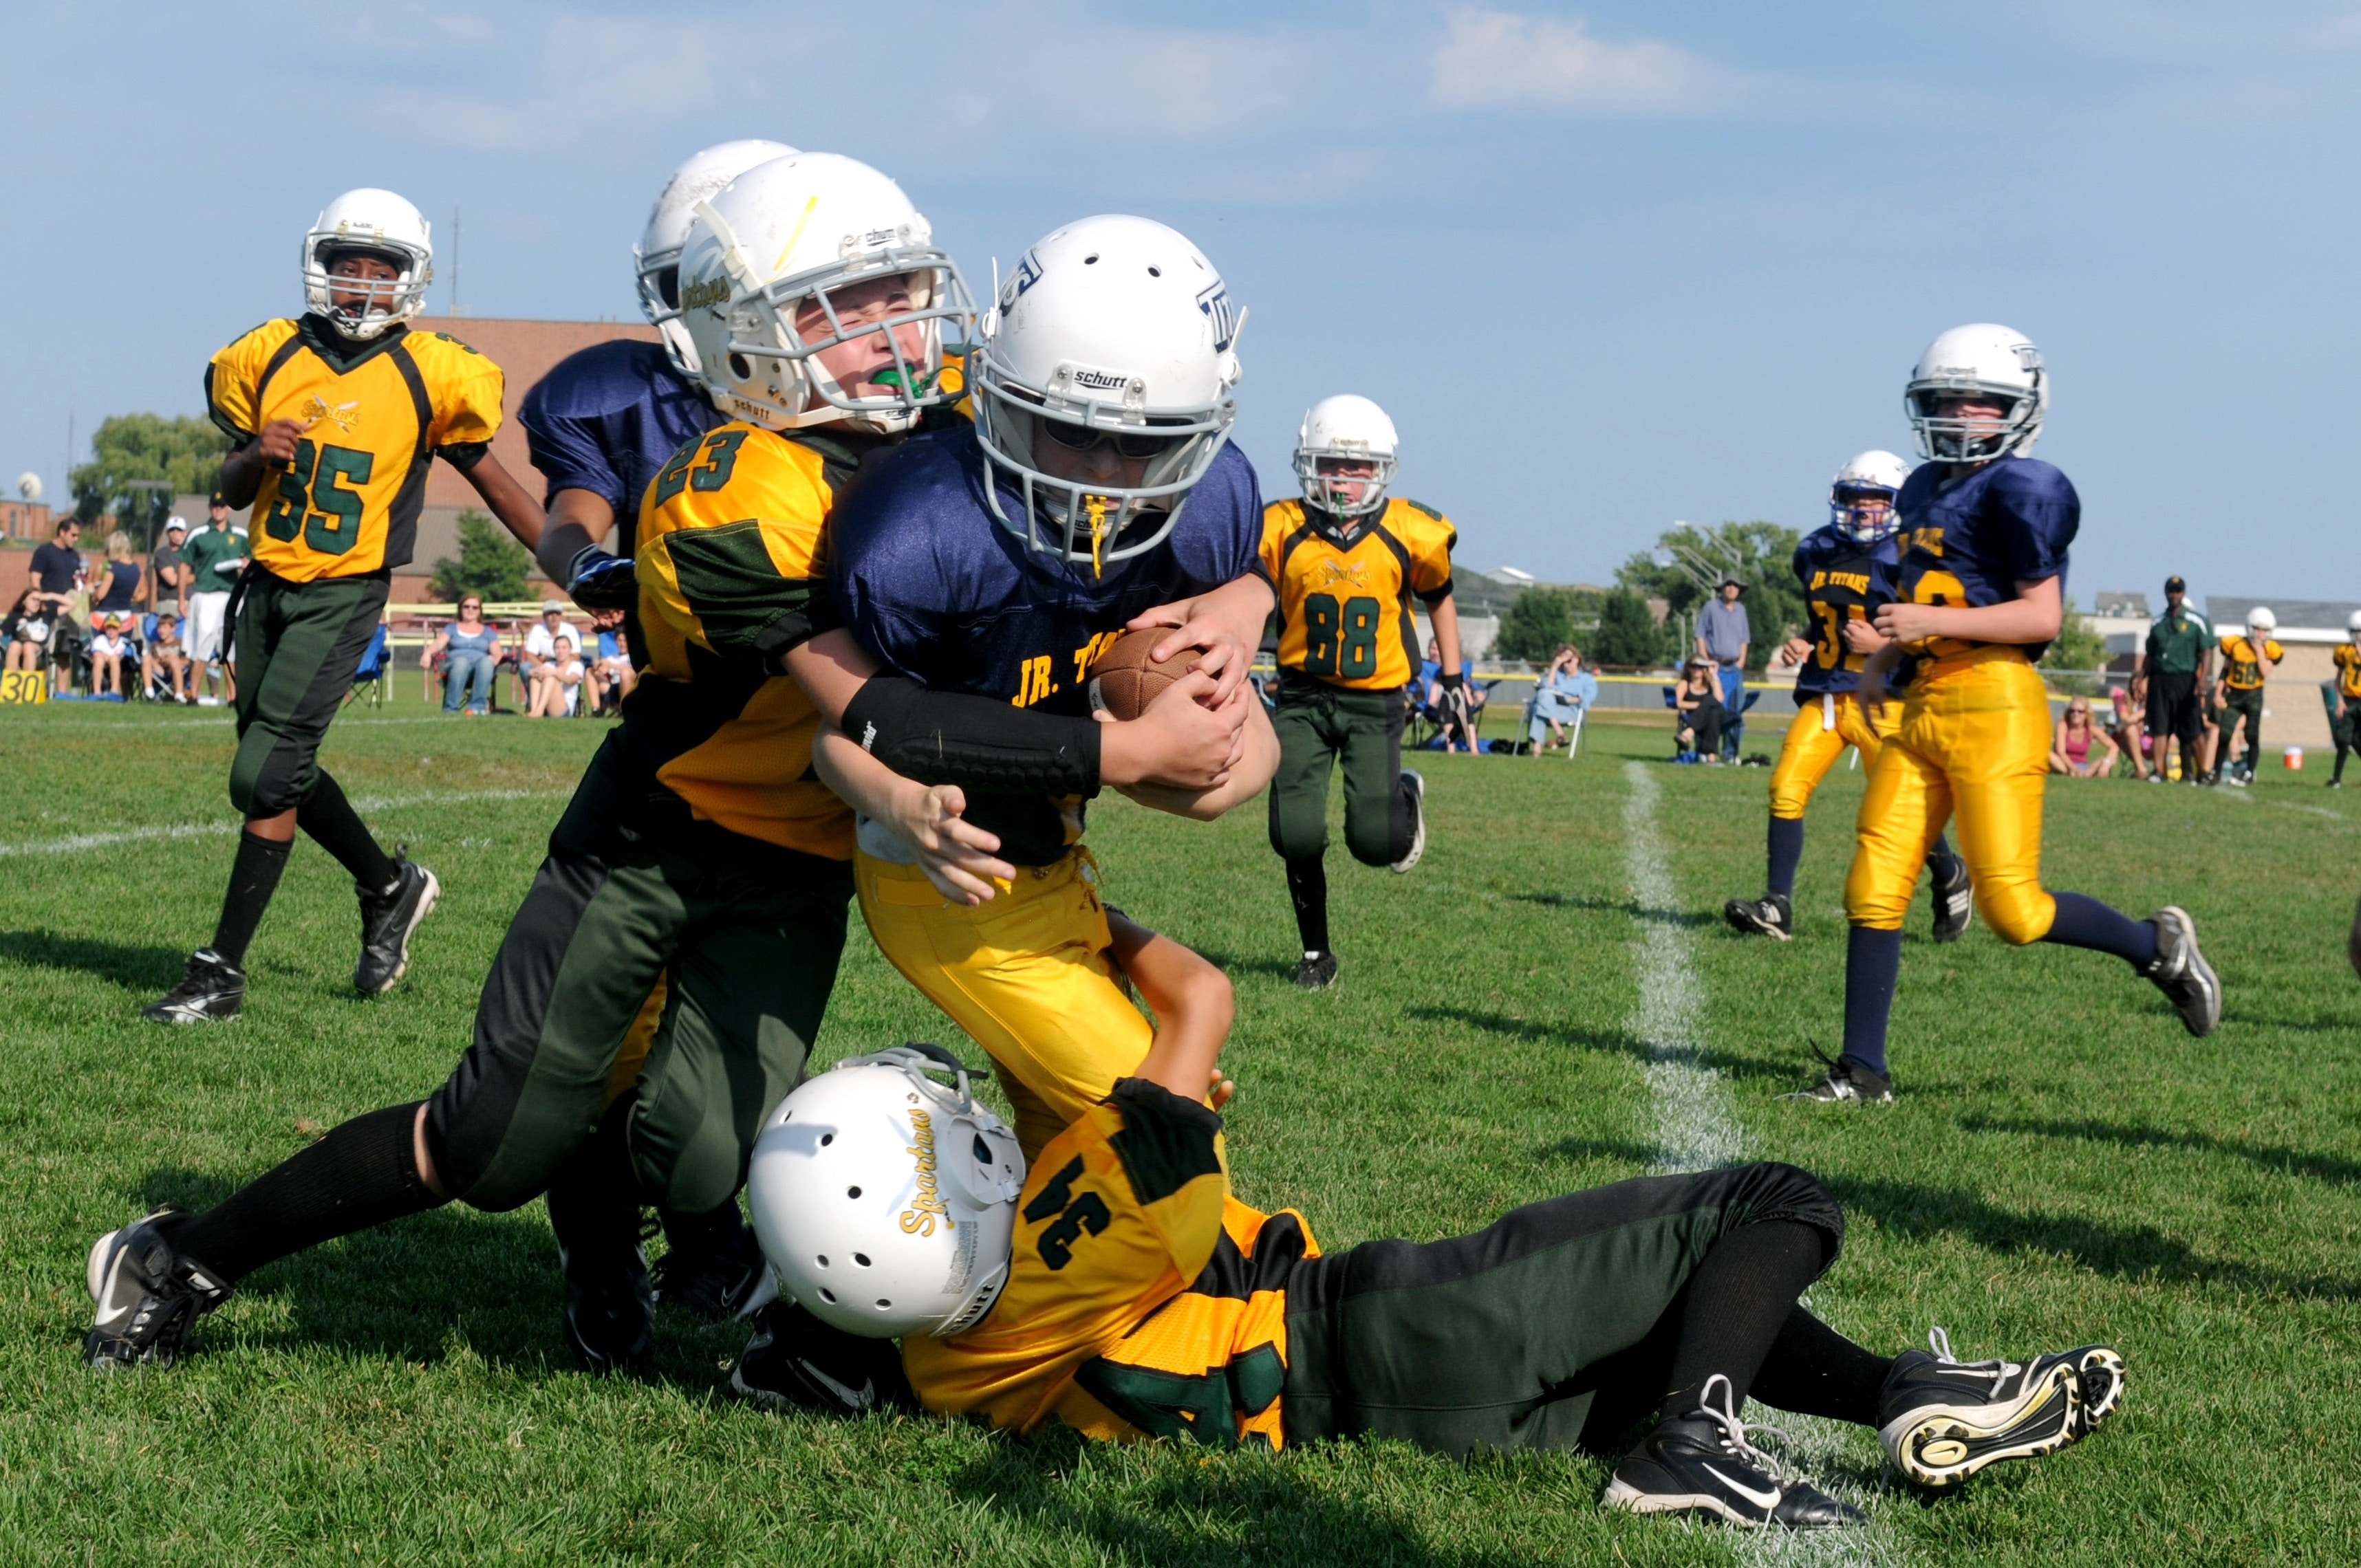 Boys participate in a game of tackle football on a lush green field.